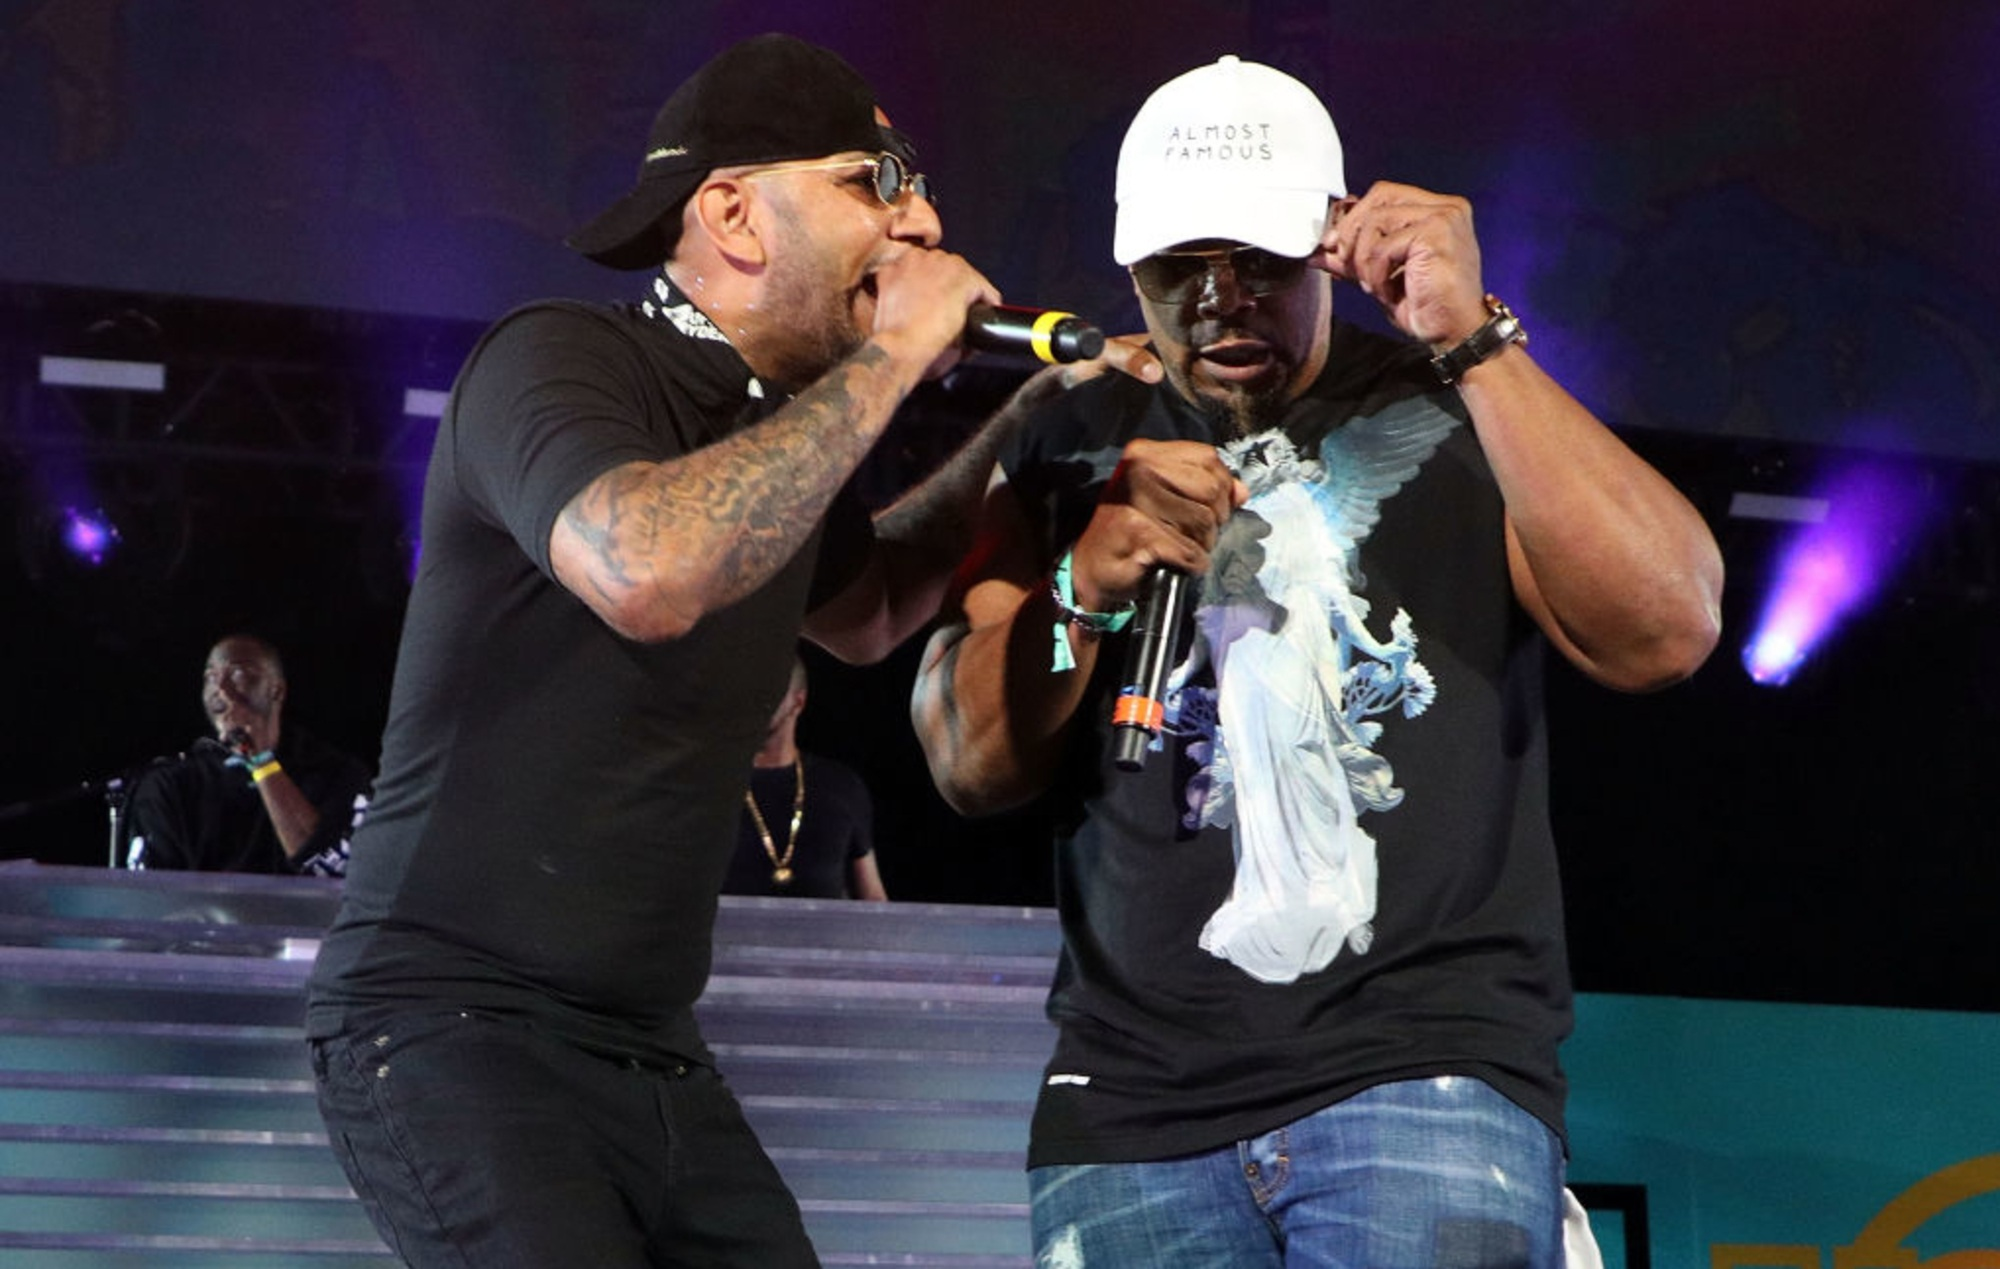 Timbaland And Swizz Beatz Have 'Verzuz' Rematch in outbreak period